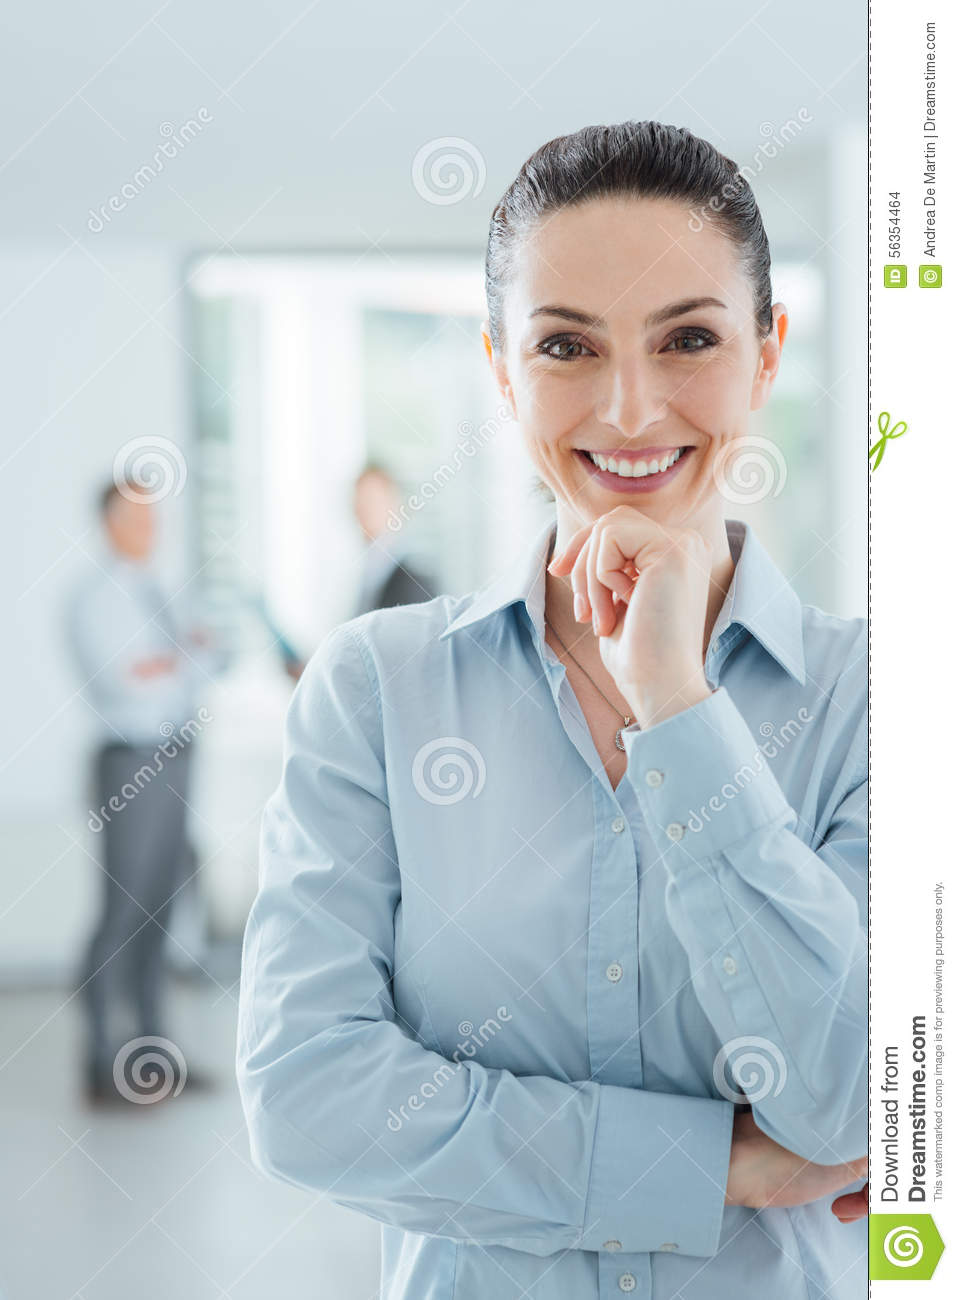 Confident Businesswoman In The Office Posing Stock Photo